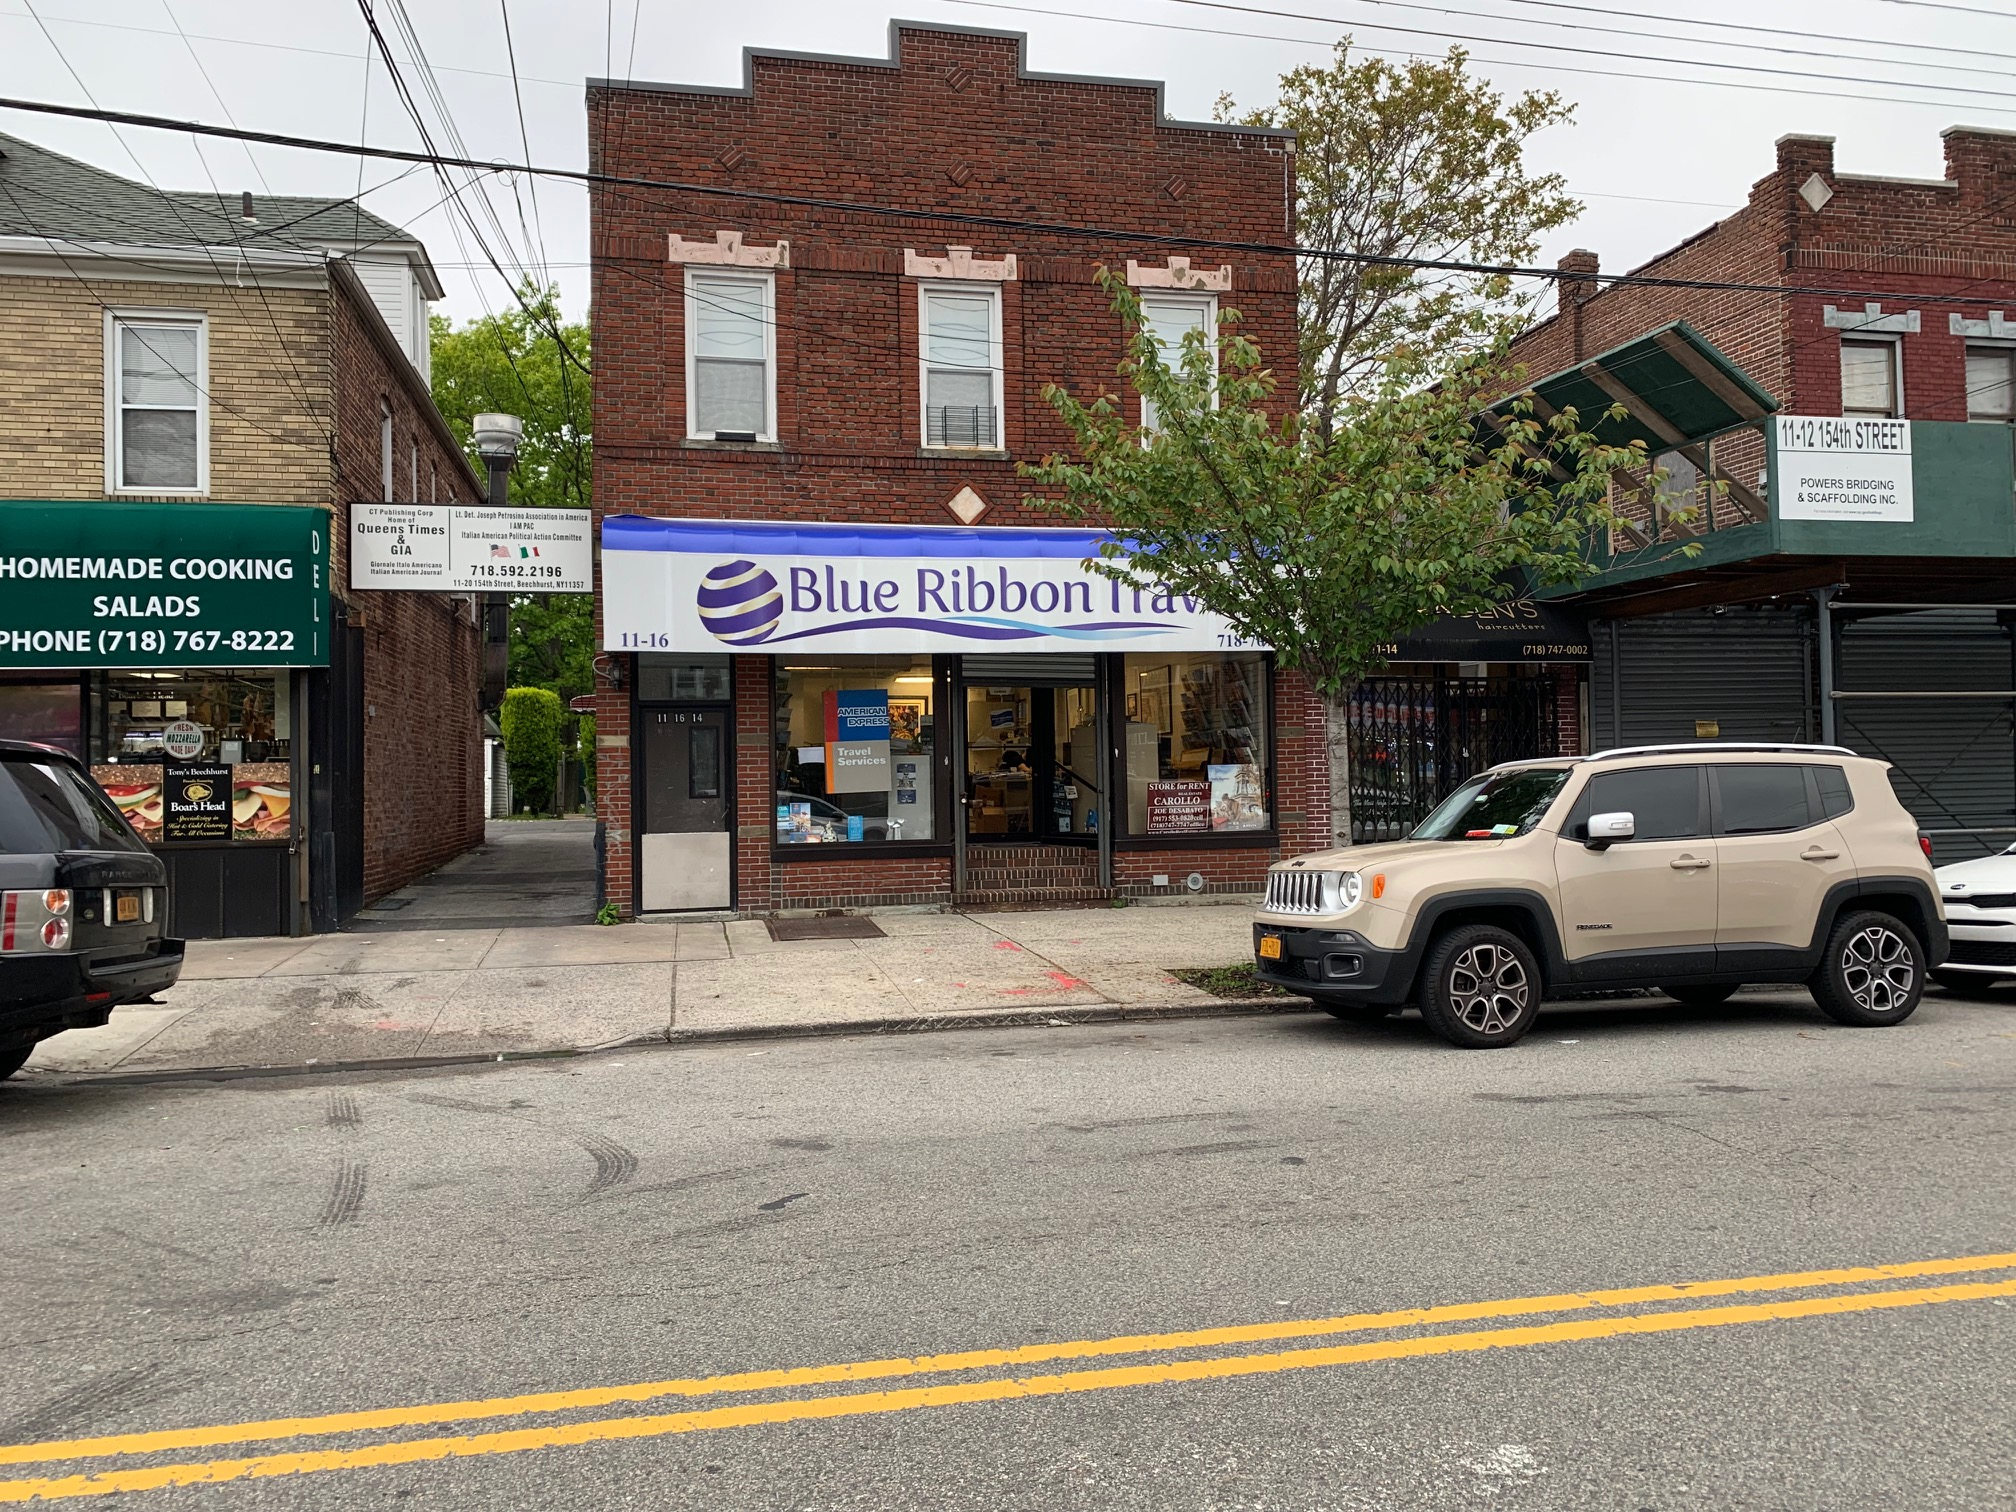 ID#: 1346570 Office Space For Rent on 154th St. in Whitestone. 765 Sq. Ft. Includes 1 Bathroom. Hardwood Flooring Throughout. Located Near Shopping Center and Bus Stop. Great Opportunity!  For more information please contact Carollo Rentals (718) 747-7747, or visit our website at CarolloRentals.com  Why Go Anywhere Else?